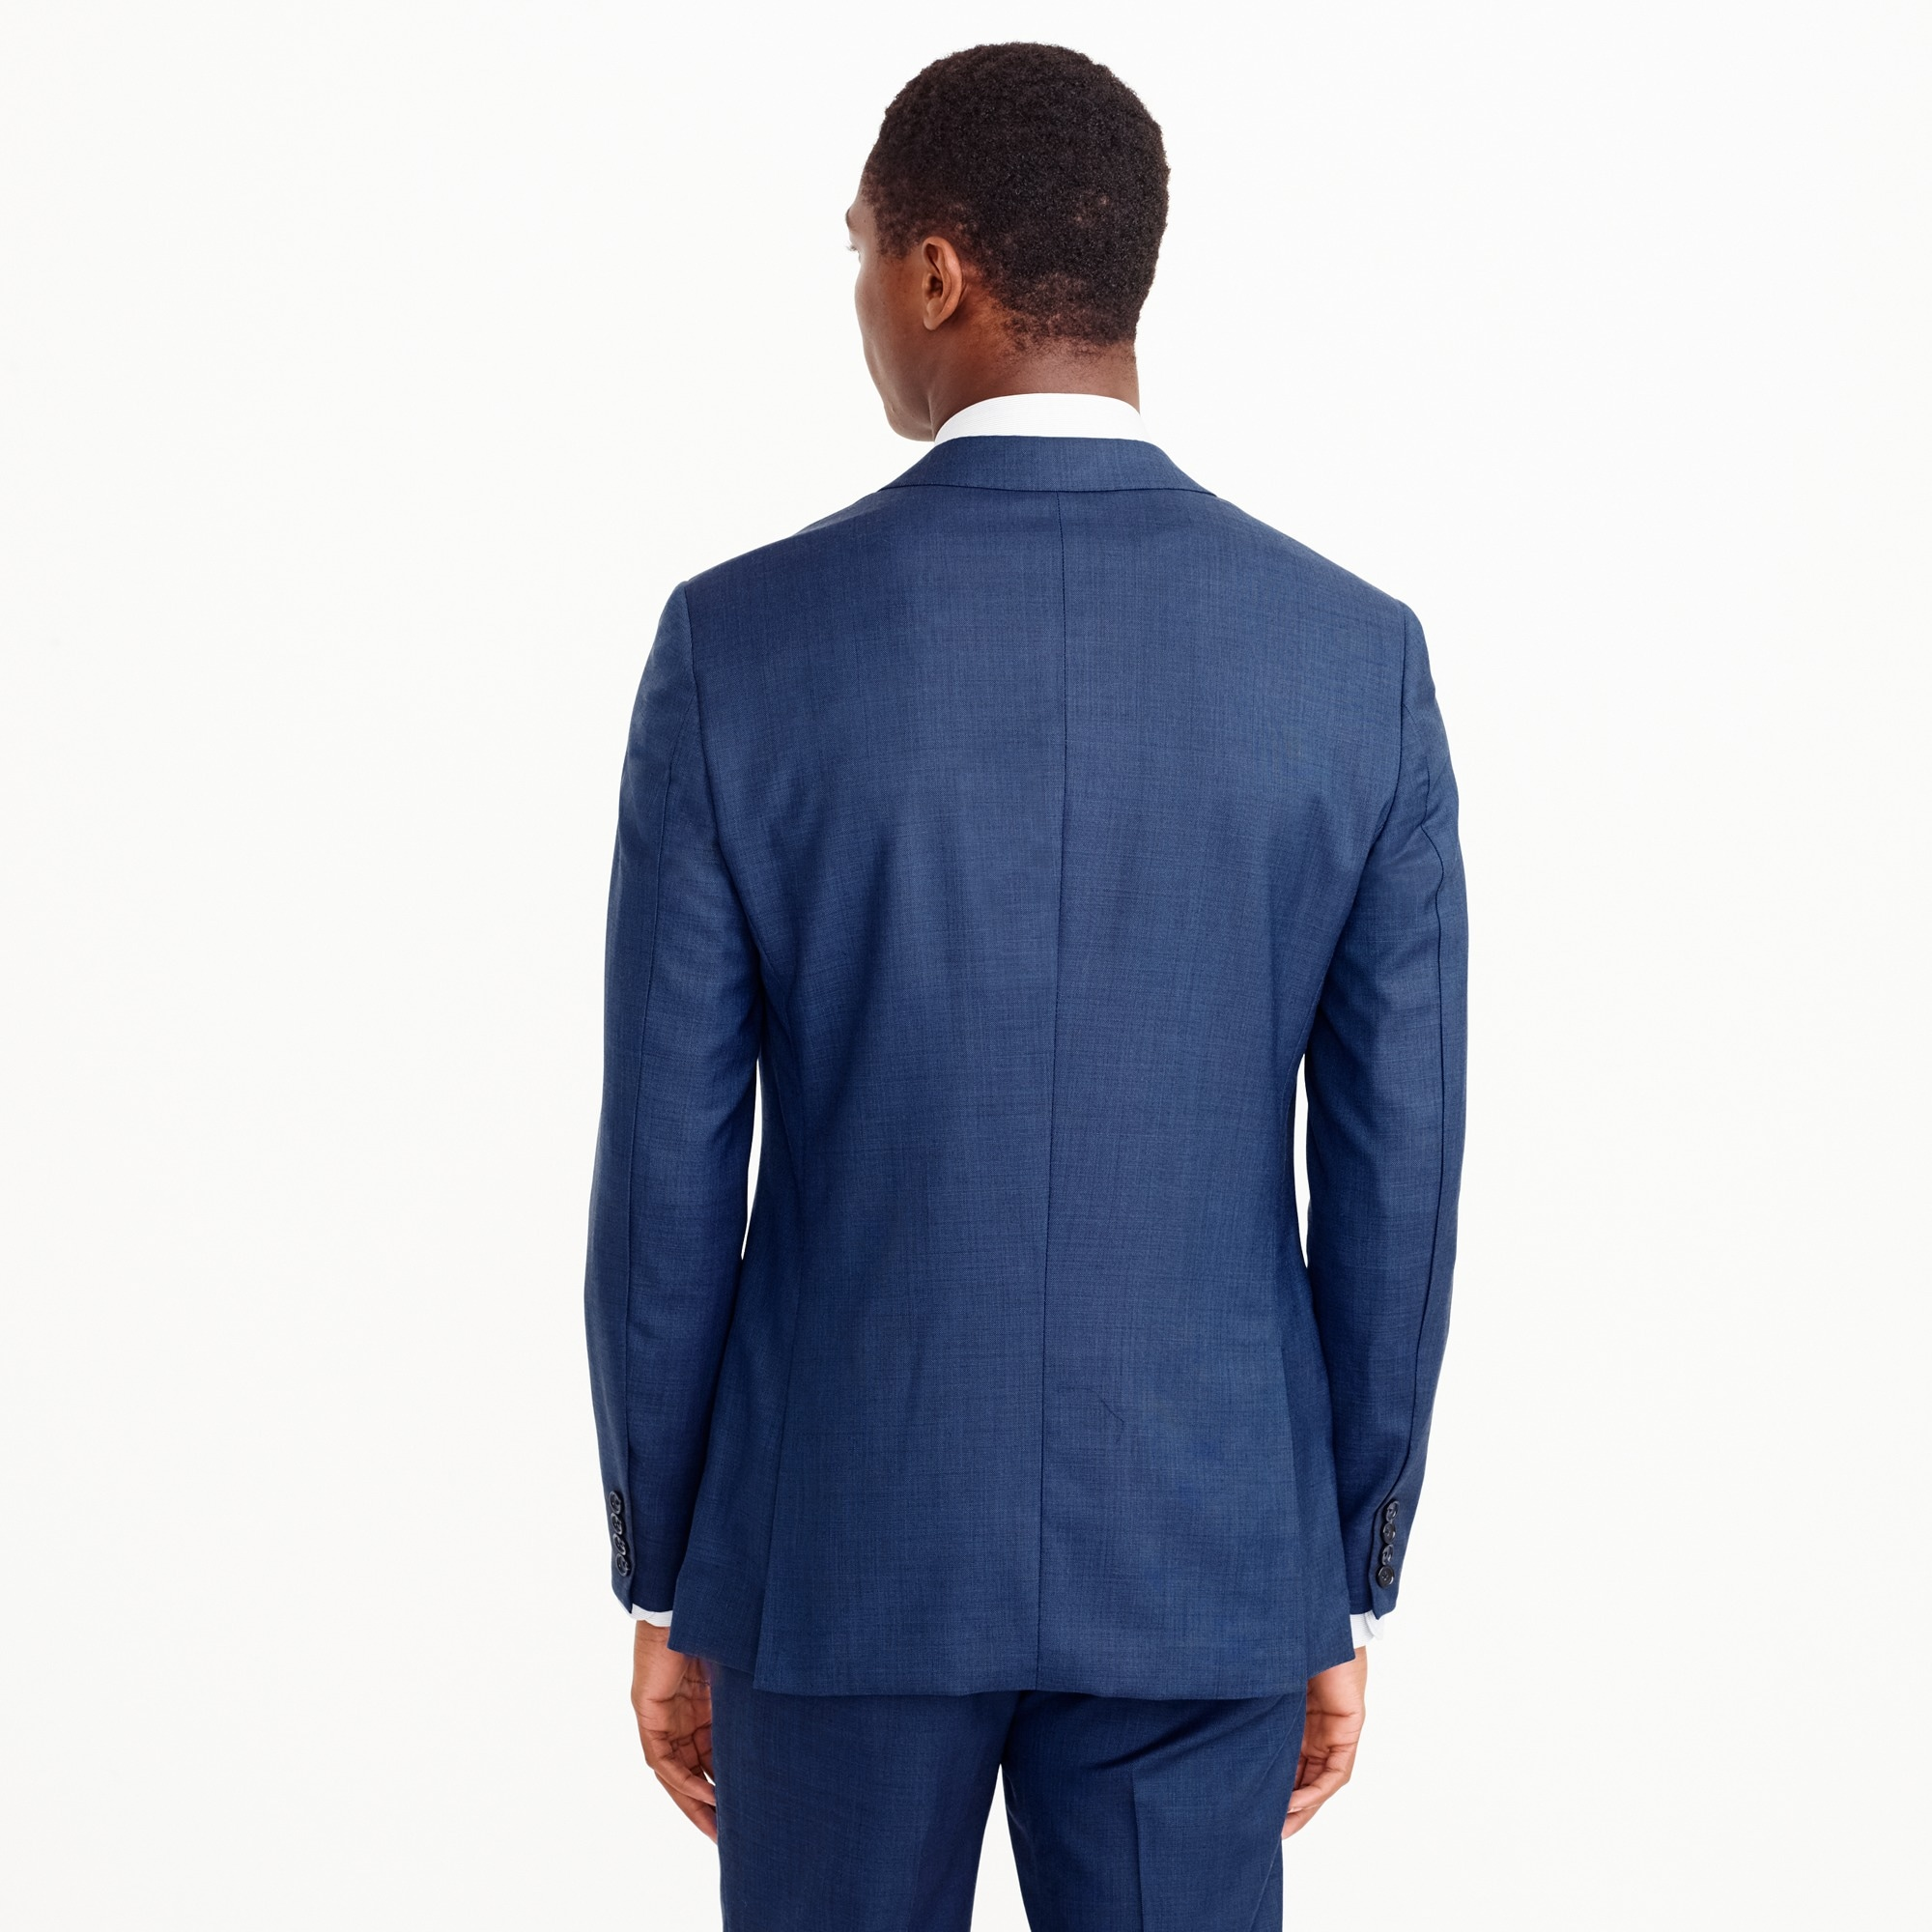 Ludlow Slim-fit suit jacket in Italian stretch worsted wool